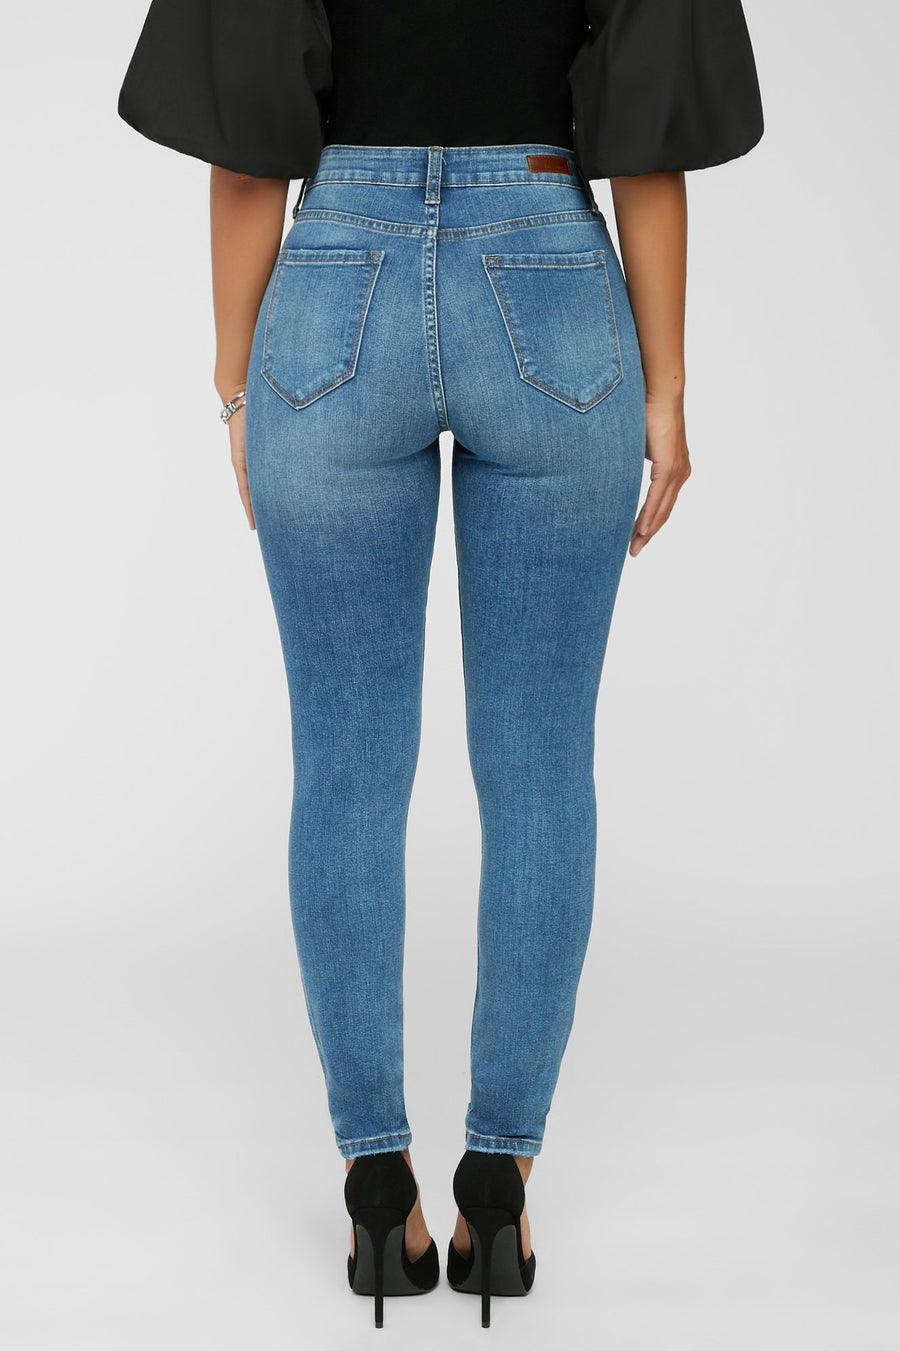 The Perfect Jeans